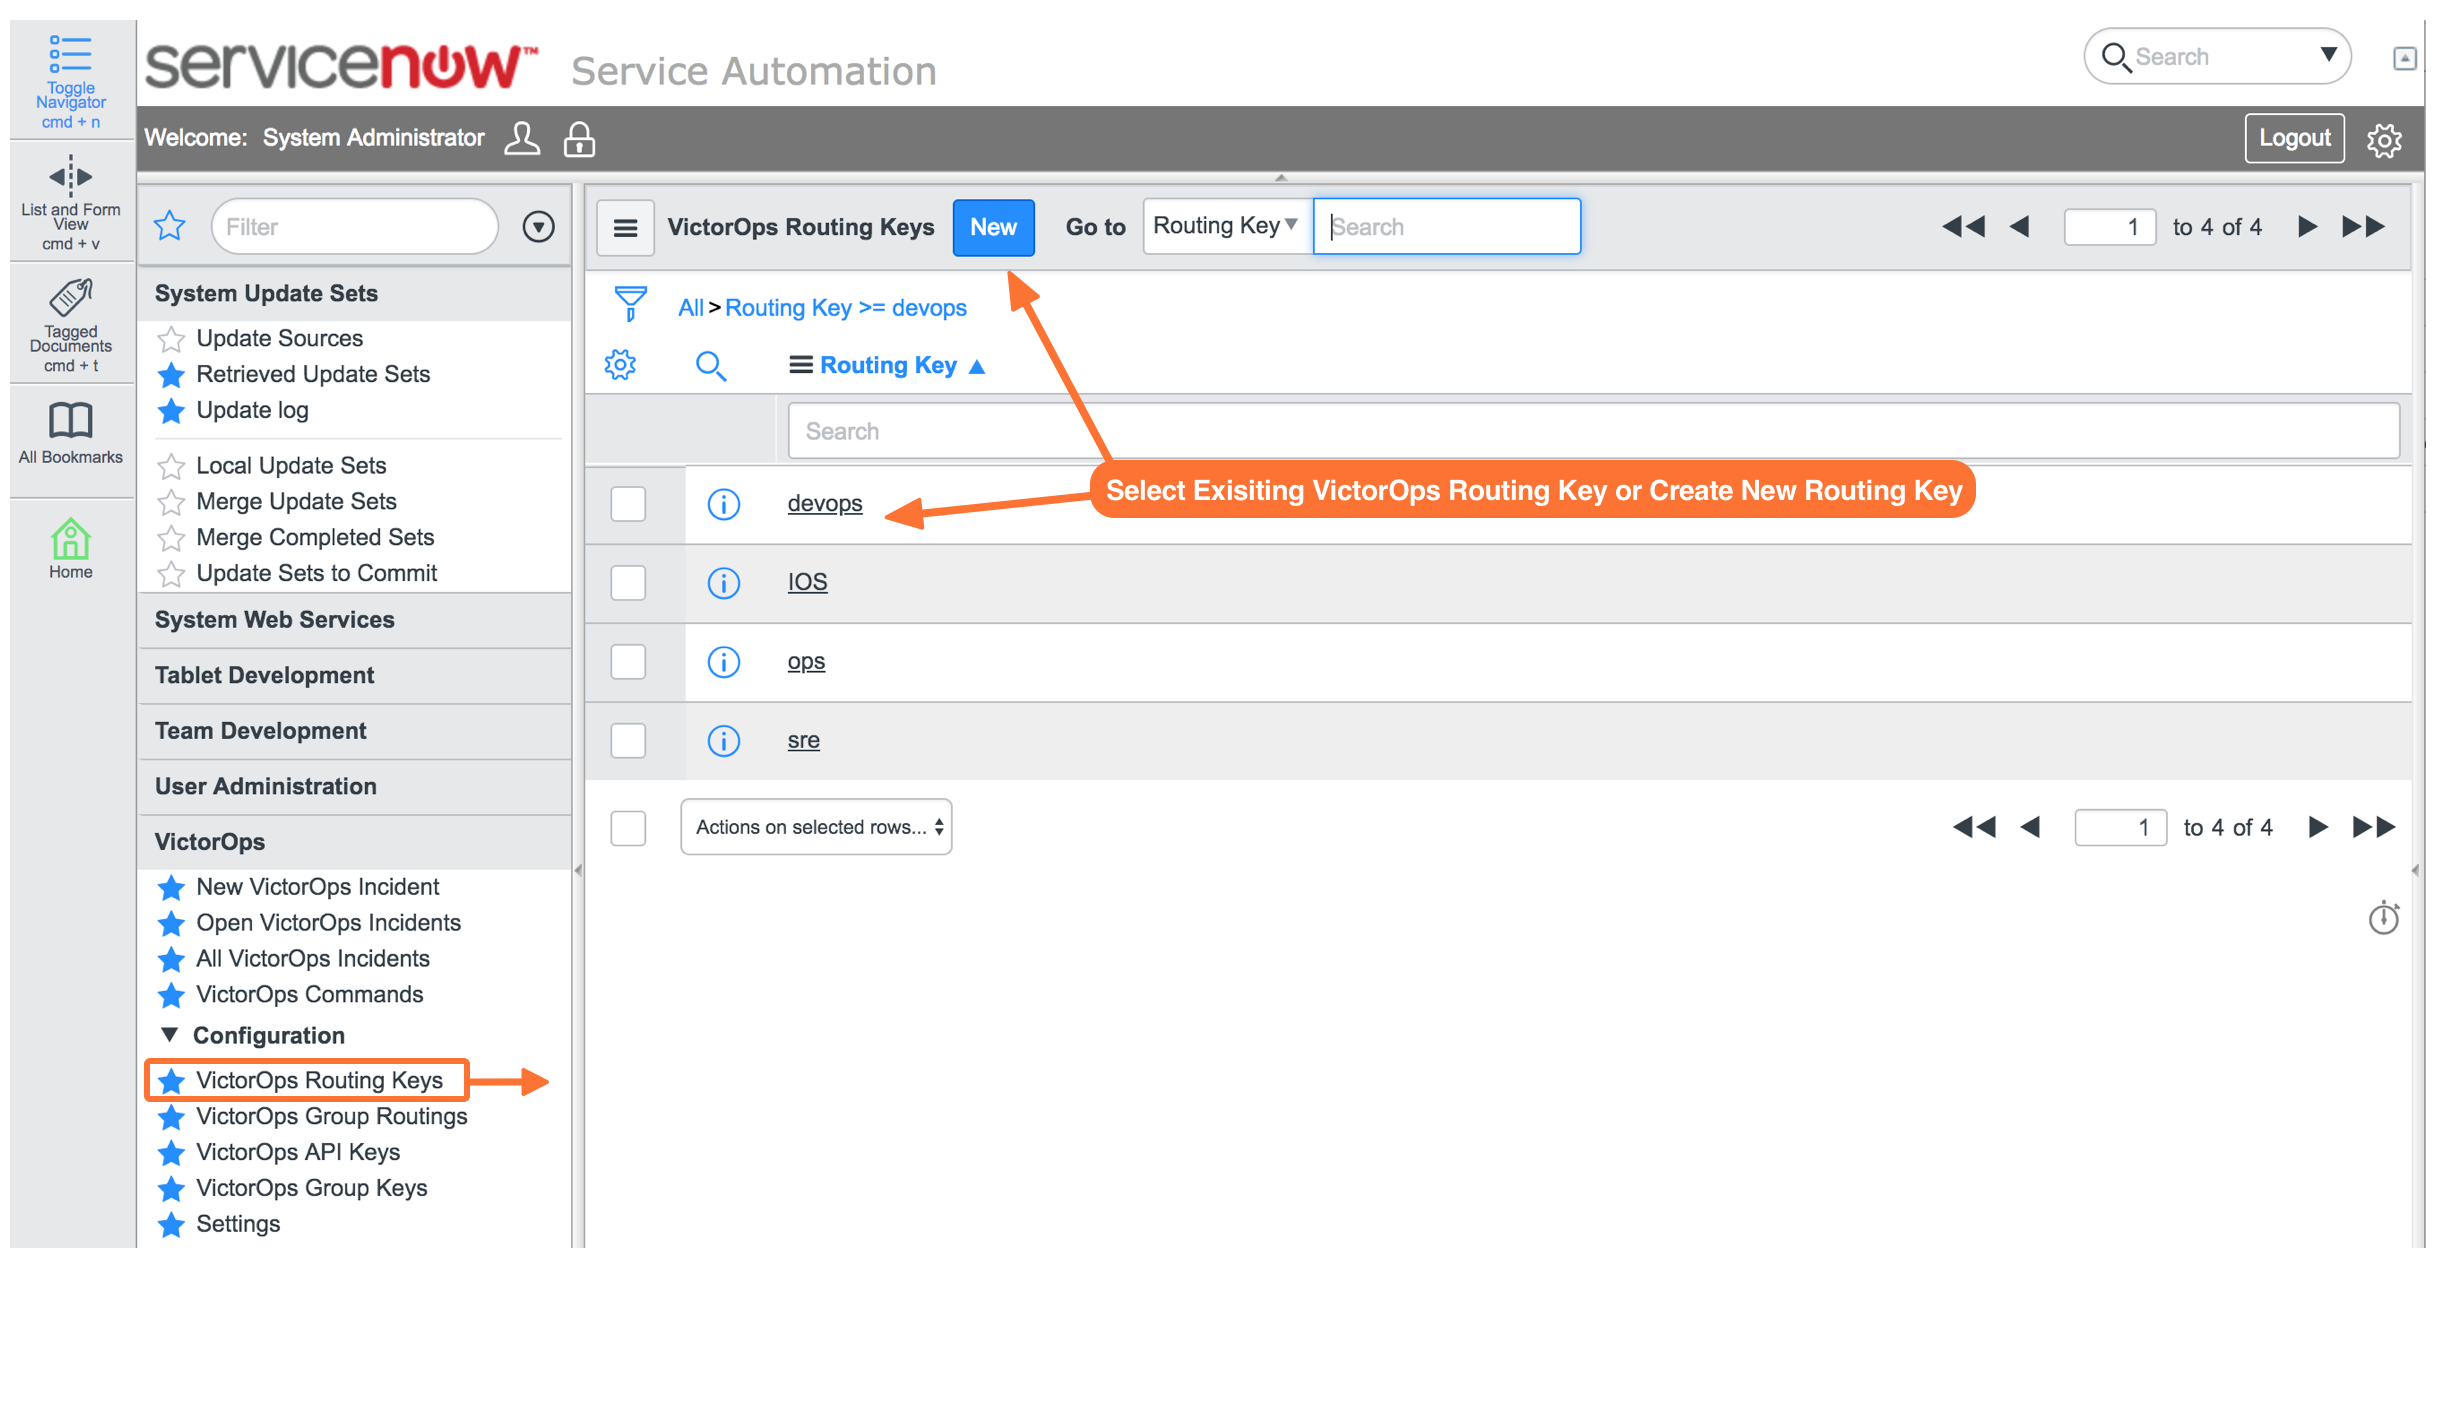 Select a ServiceNow user group and VictorOps routing key